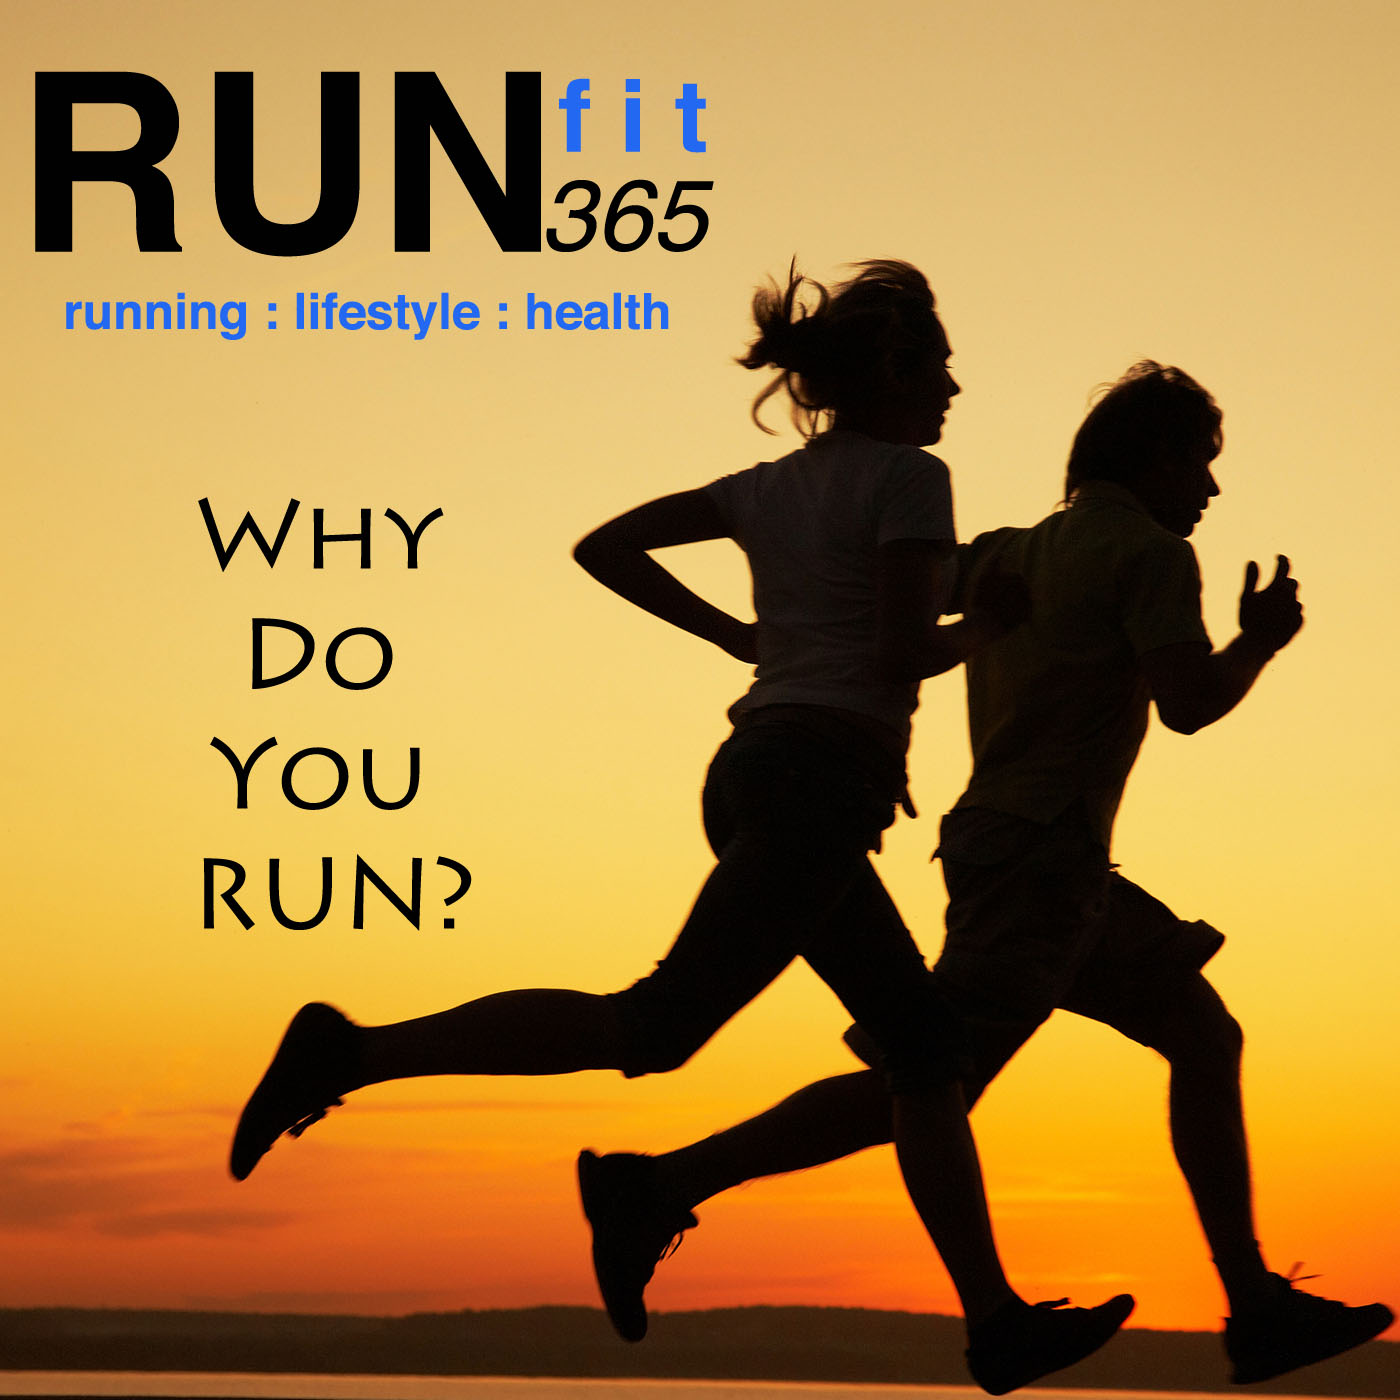 RUNfit 365 Podcast: Running | Marathon | Healthy Lifestyle